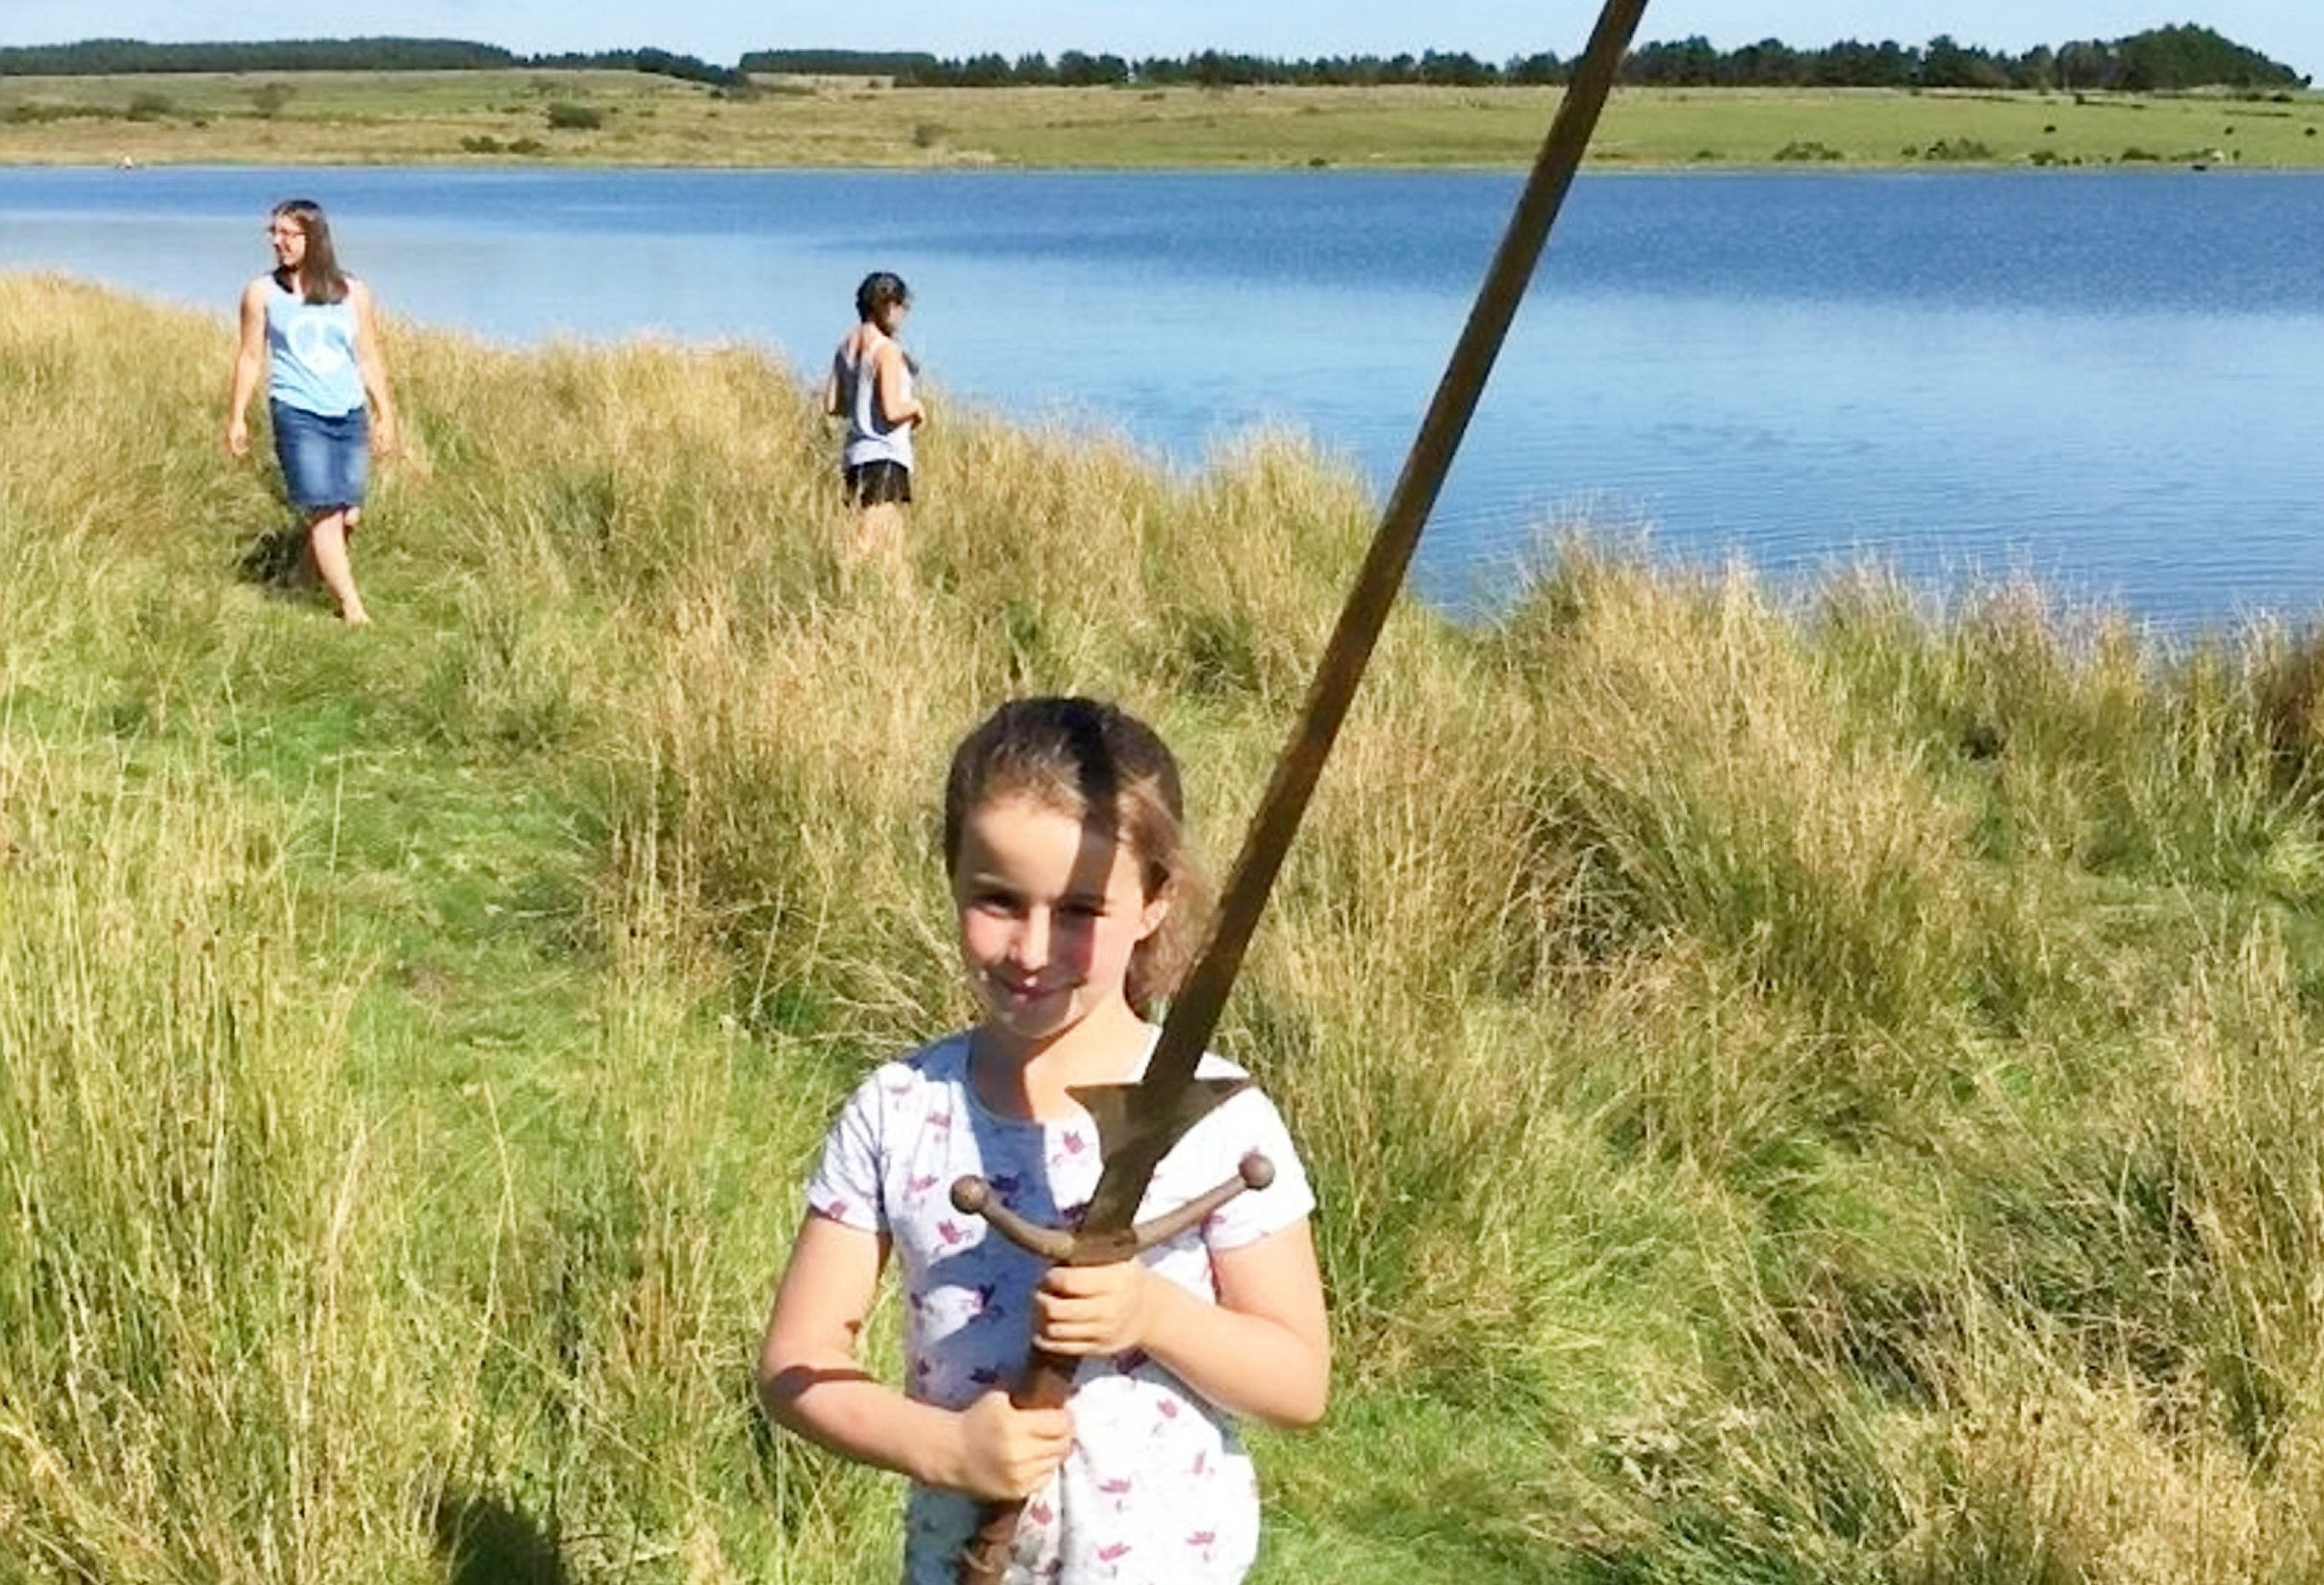 Is Matilda, 7, the new lady of the lake?